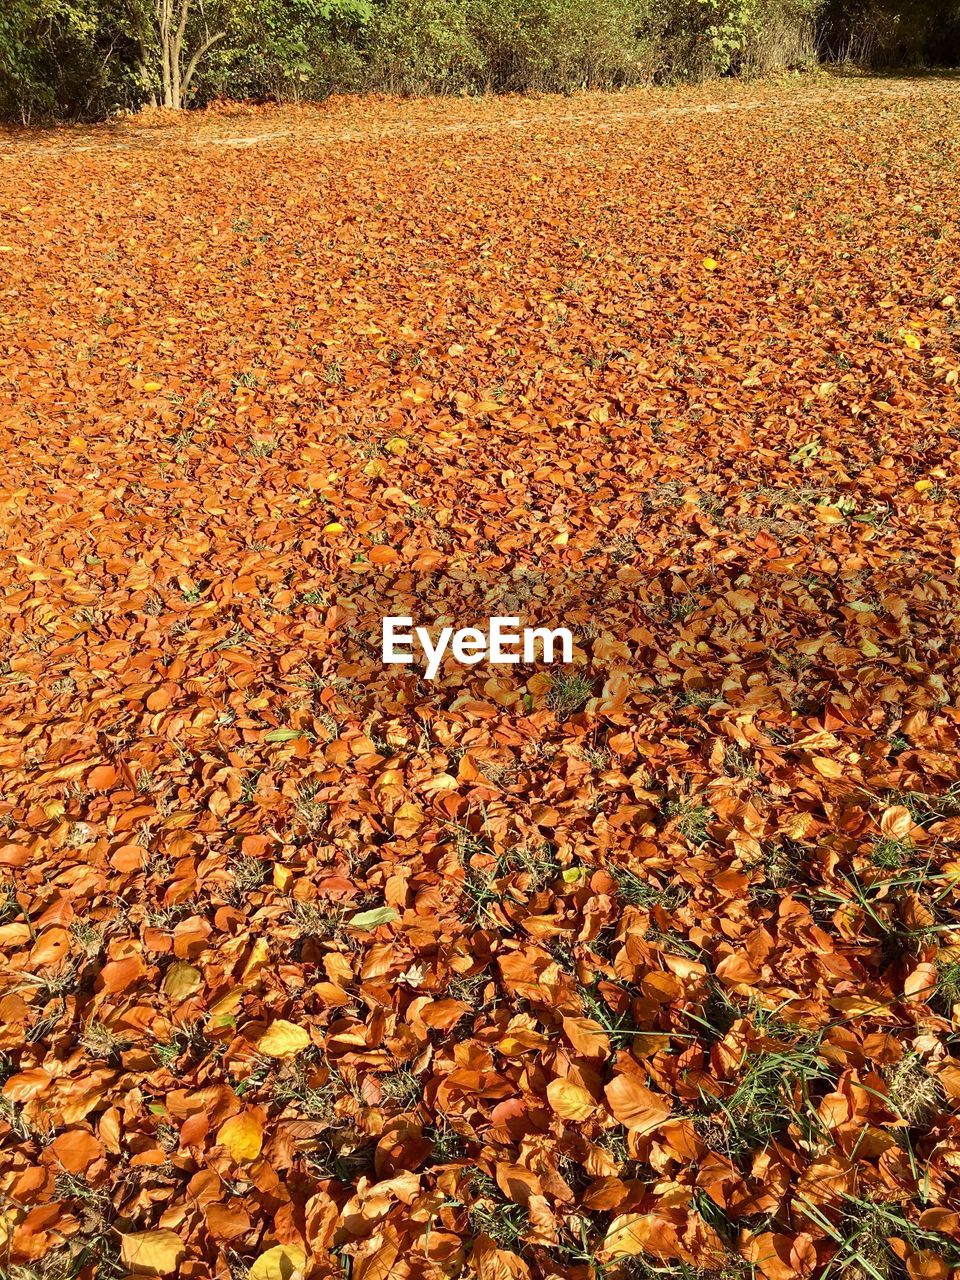 autumn, change, leaf, nature, dry, beauty in nature, leaves, field, orange color, day, tranquility, outdoors, abundance, fallen, scenics, no people, tree, landscape, maple